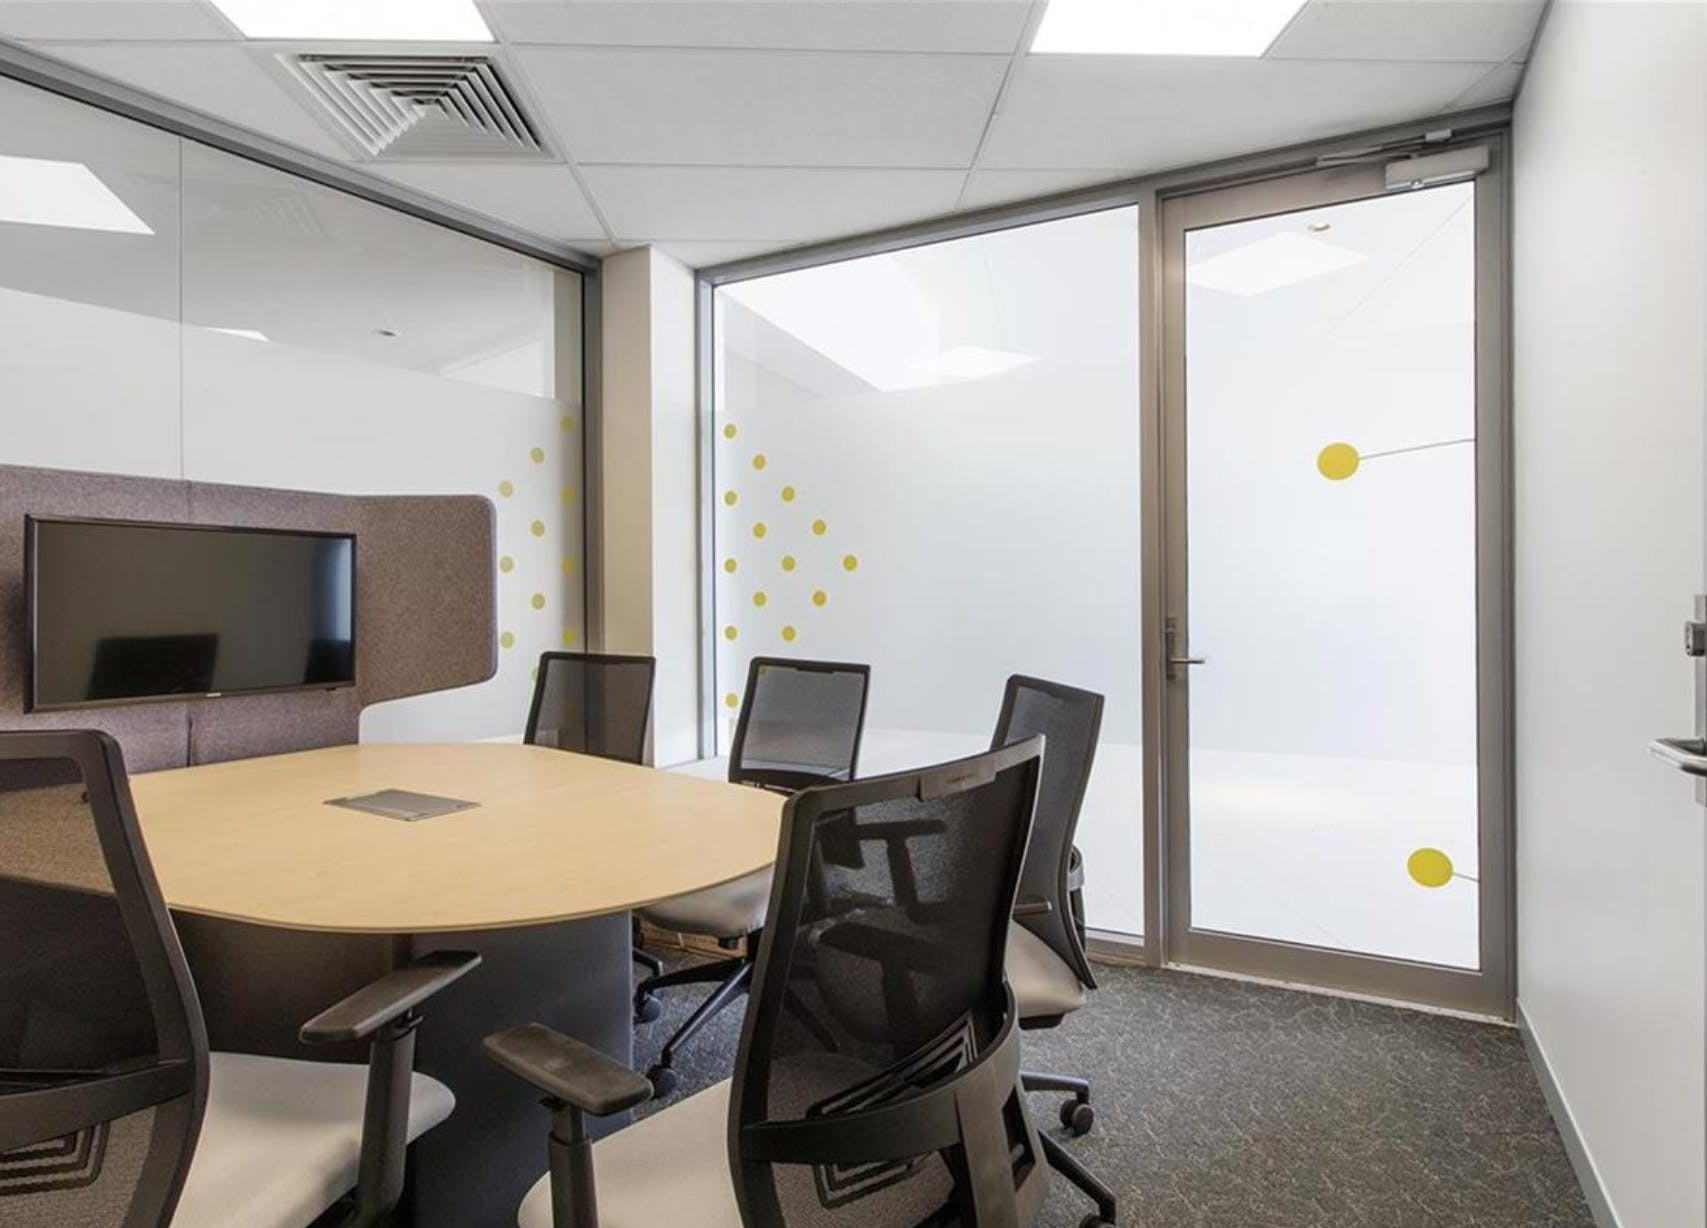 6 Person, meeting room at The Hive Coworking & Office Space, image 1